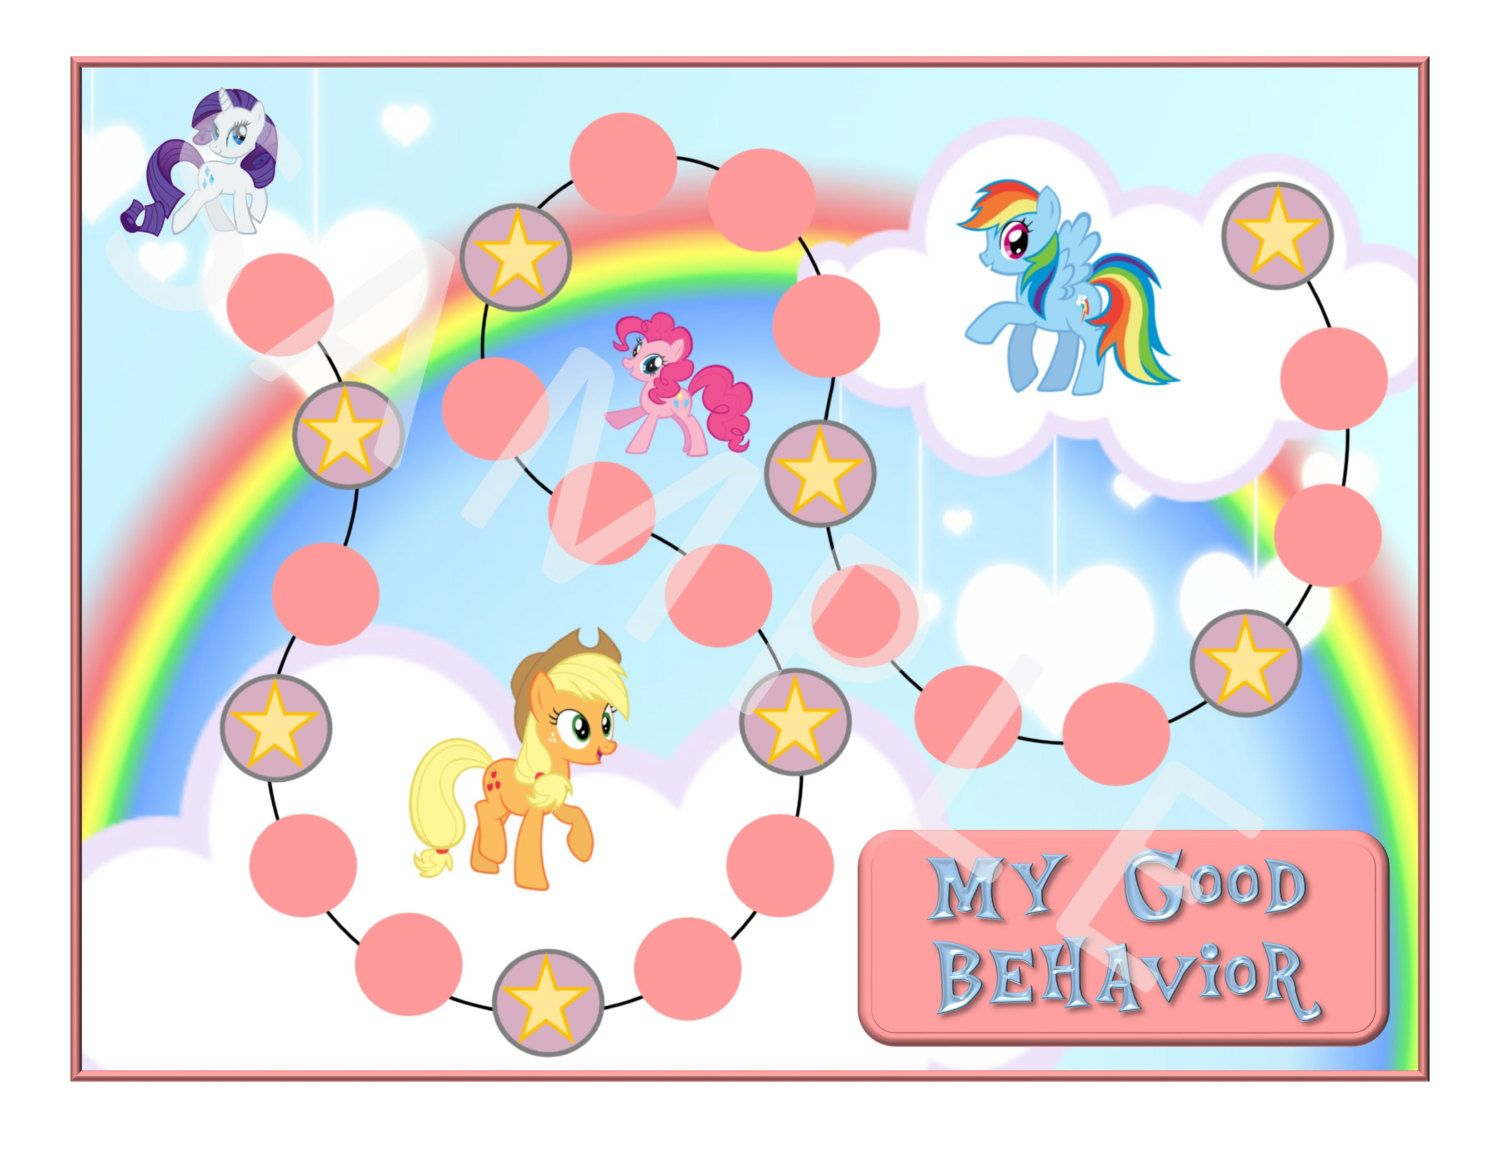 My little pony printable behavior chart by dunnwiththree on etsy